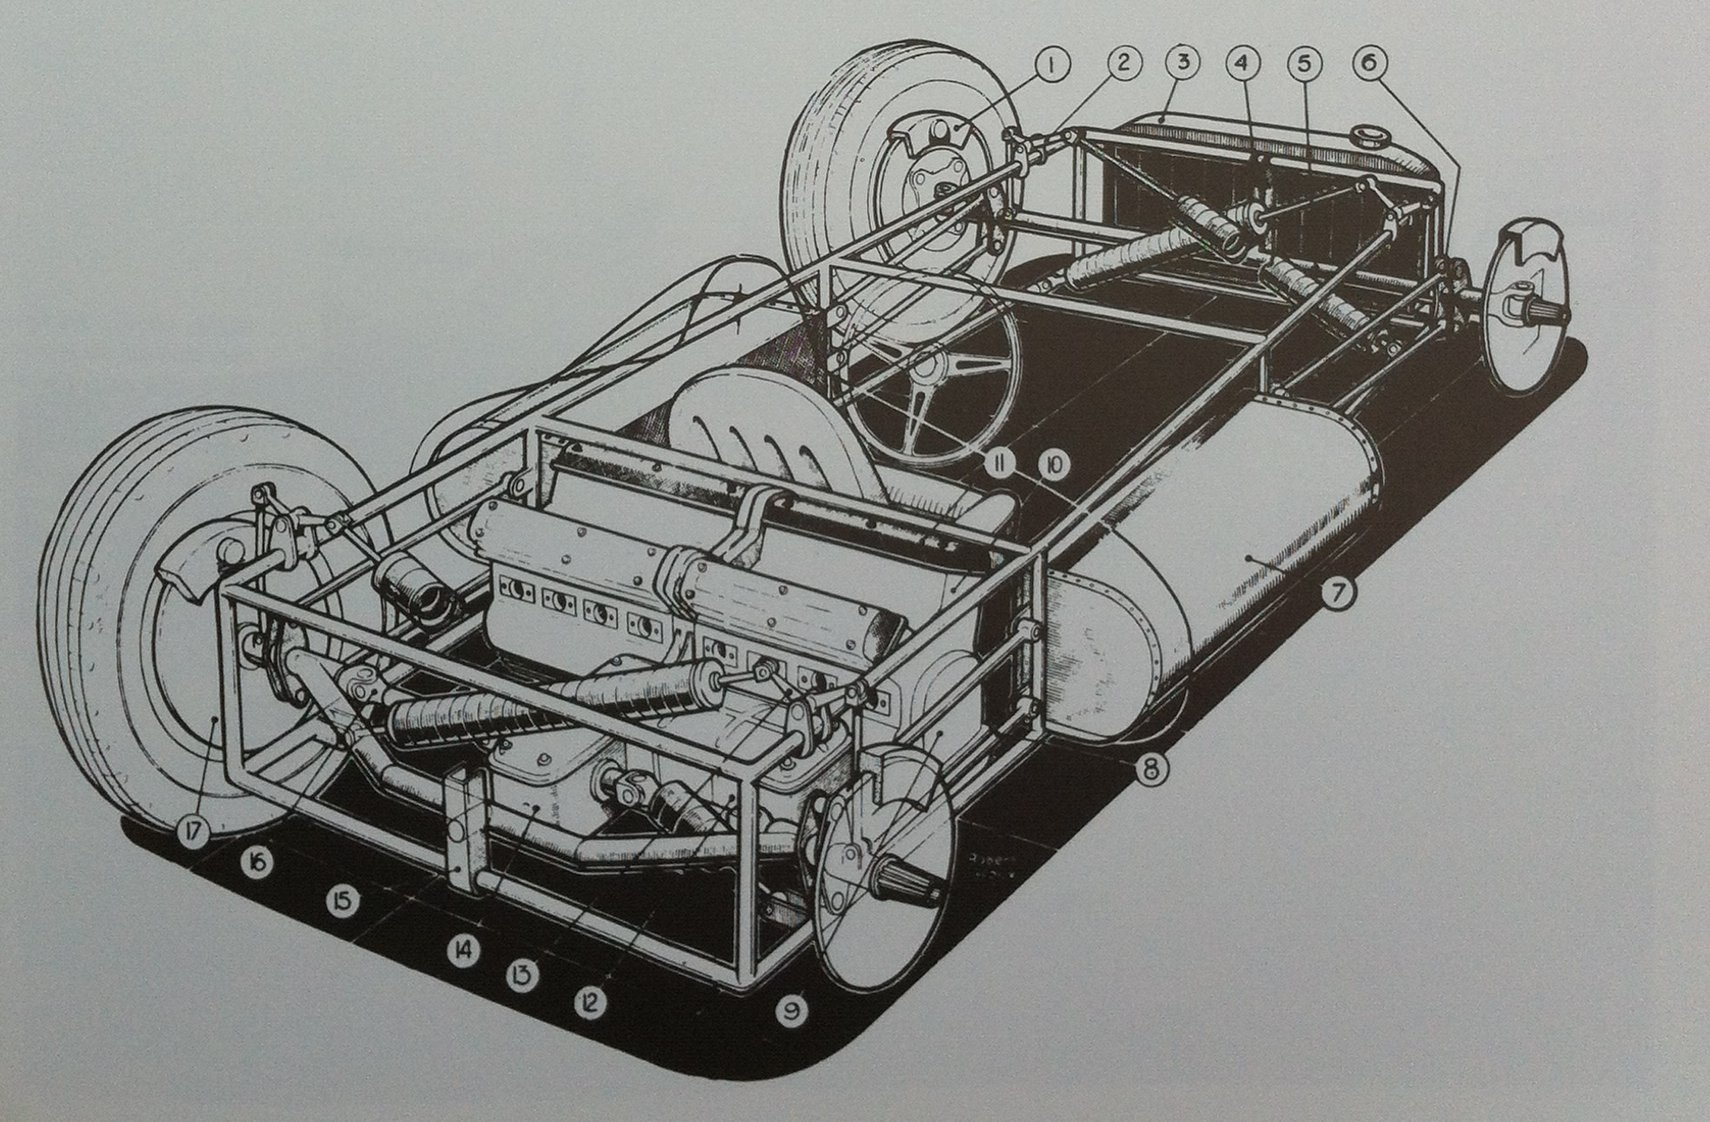 The T251's intricate drive system in detail.